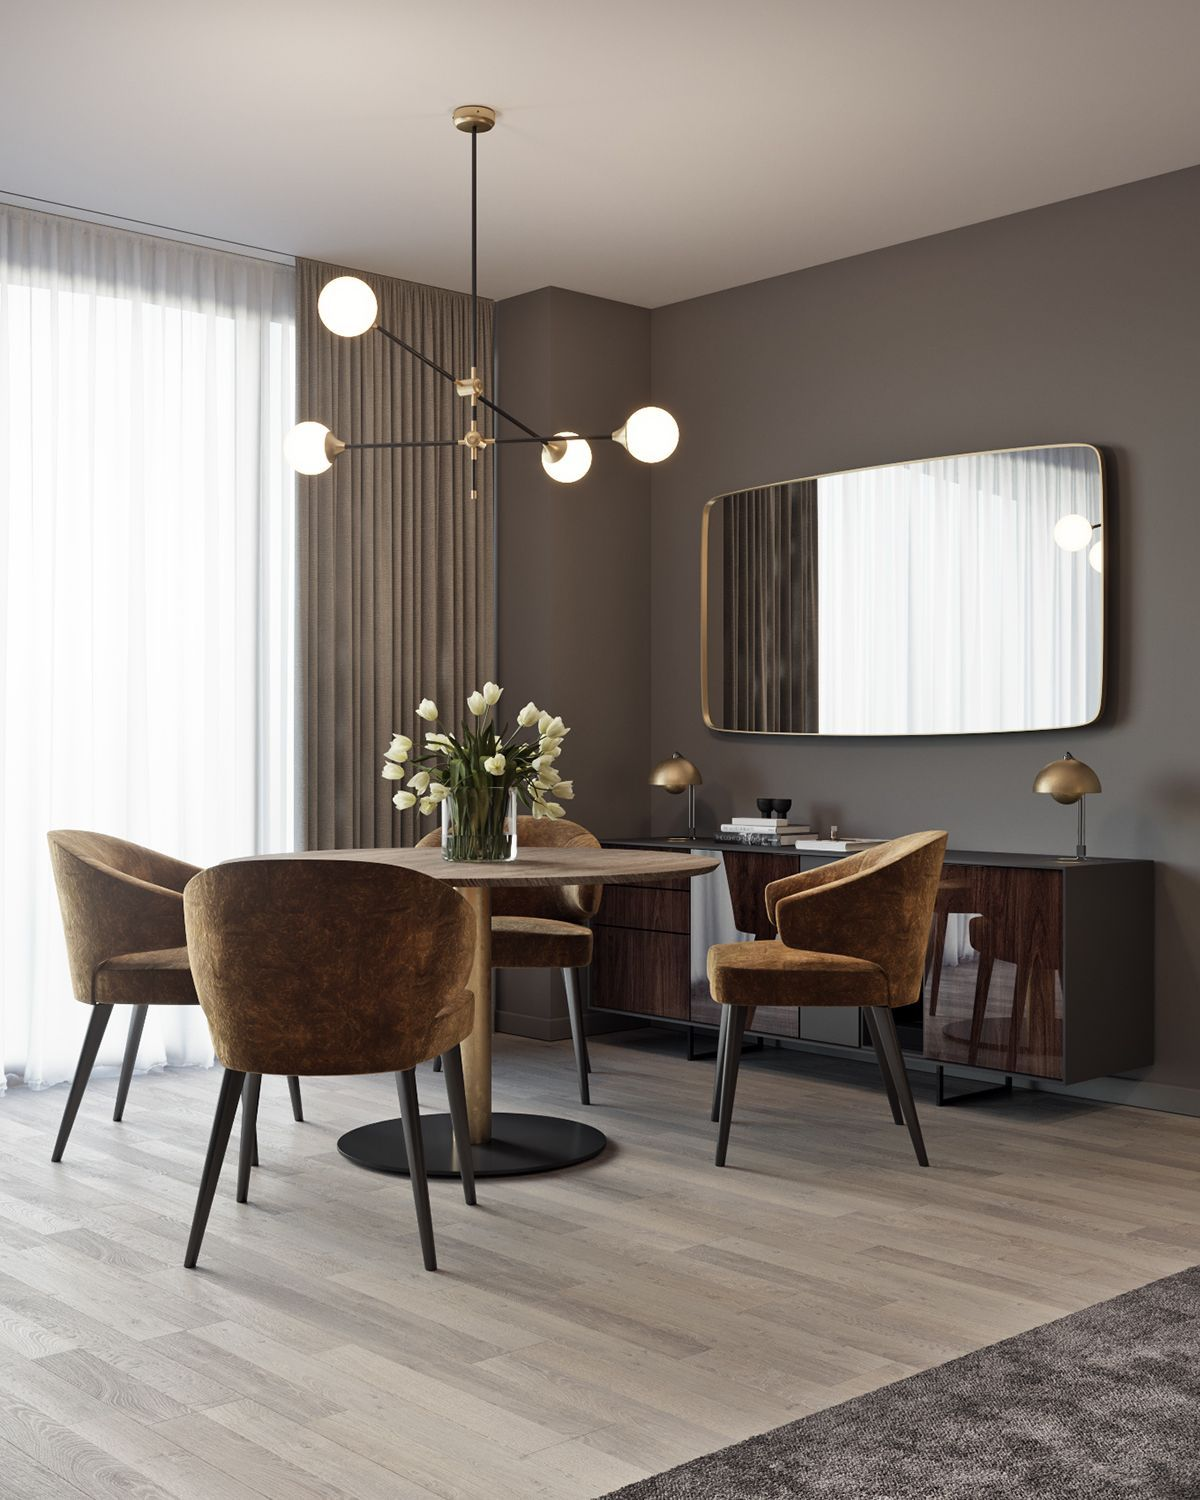 10 Rustic Dining Room Ideas: 10 Simple And Modern Ideas Can Change Your Life: Dining